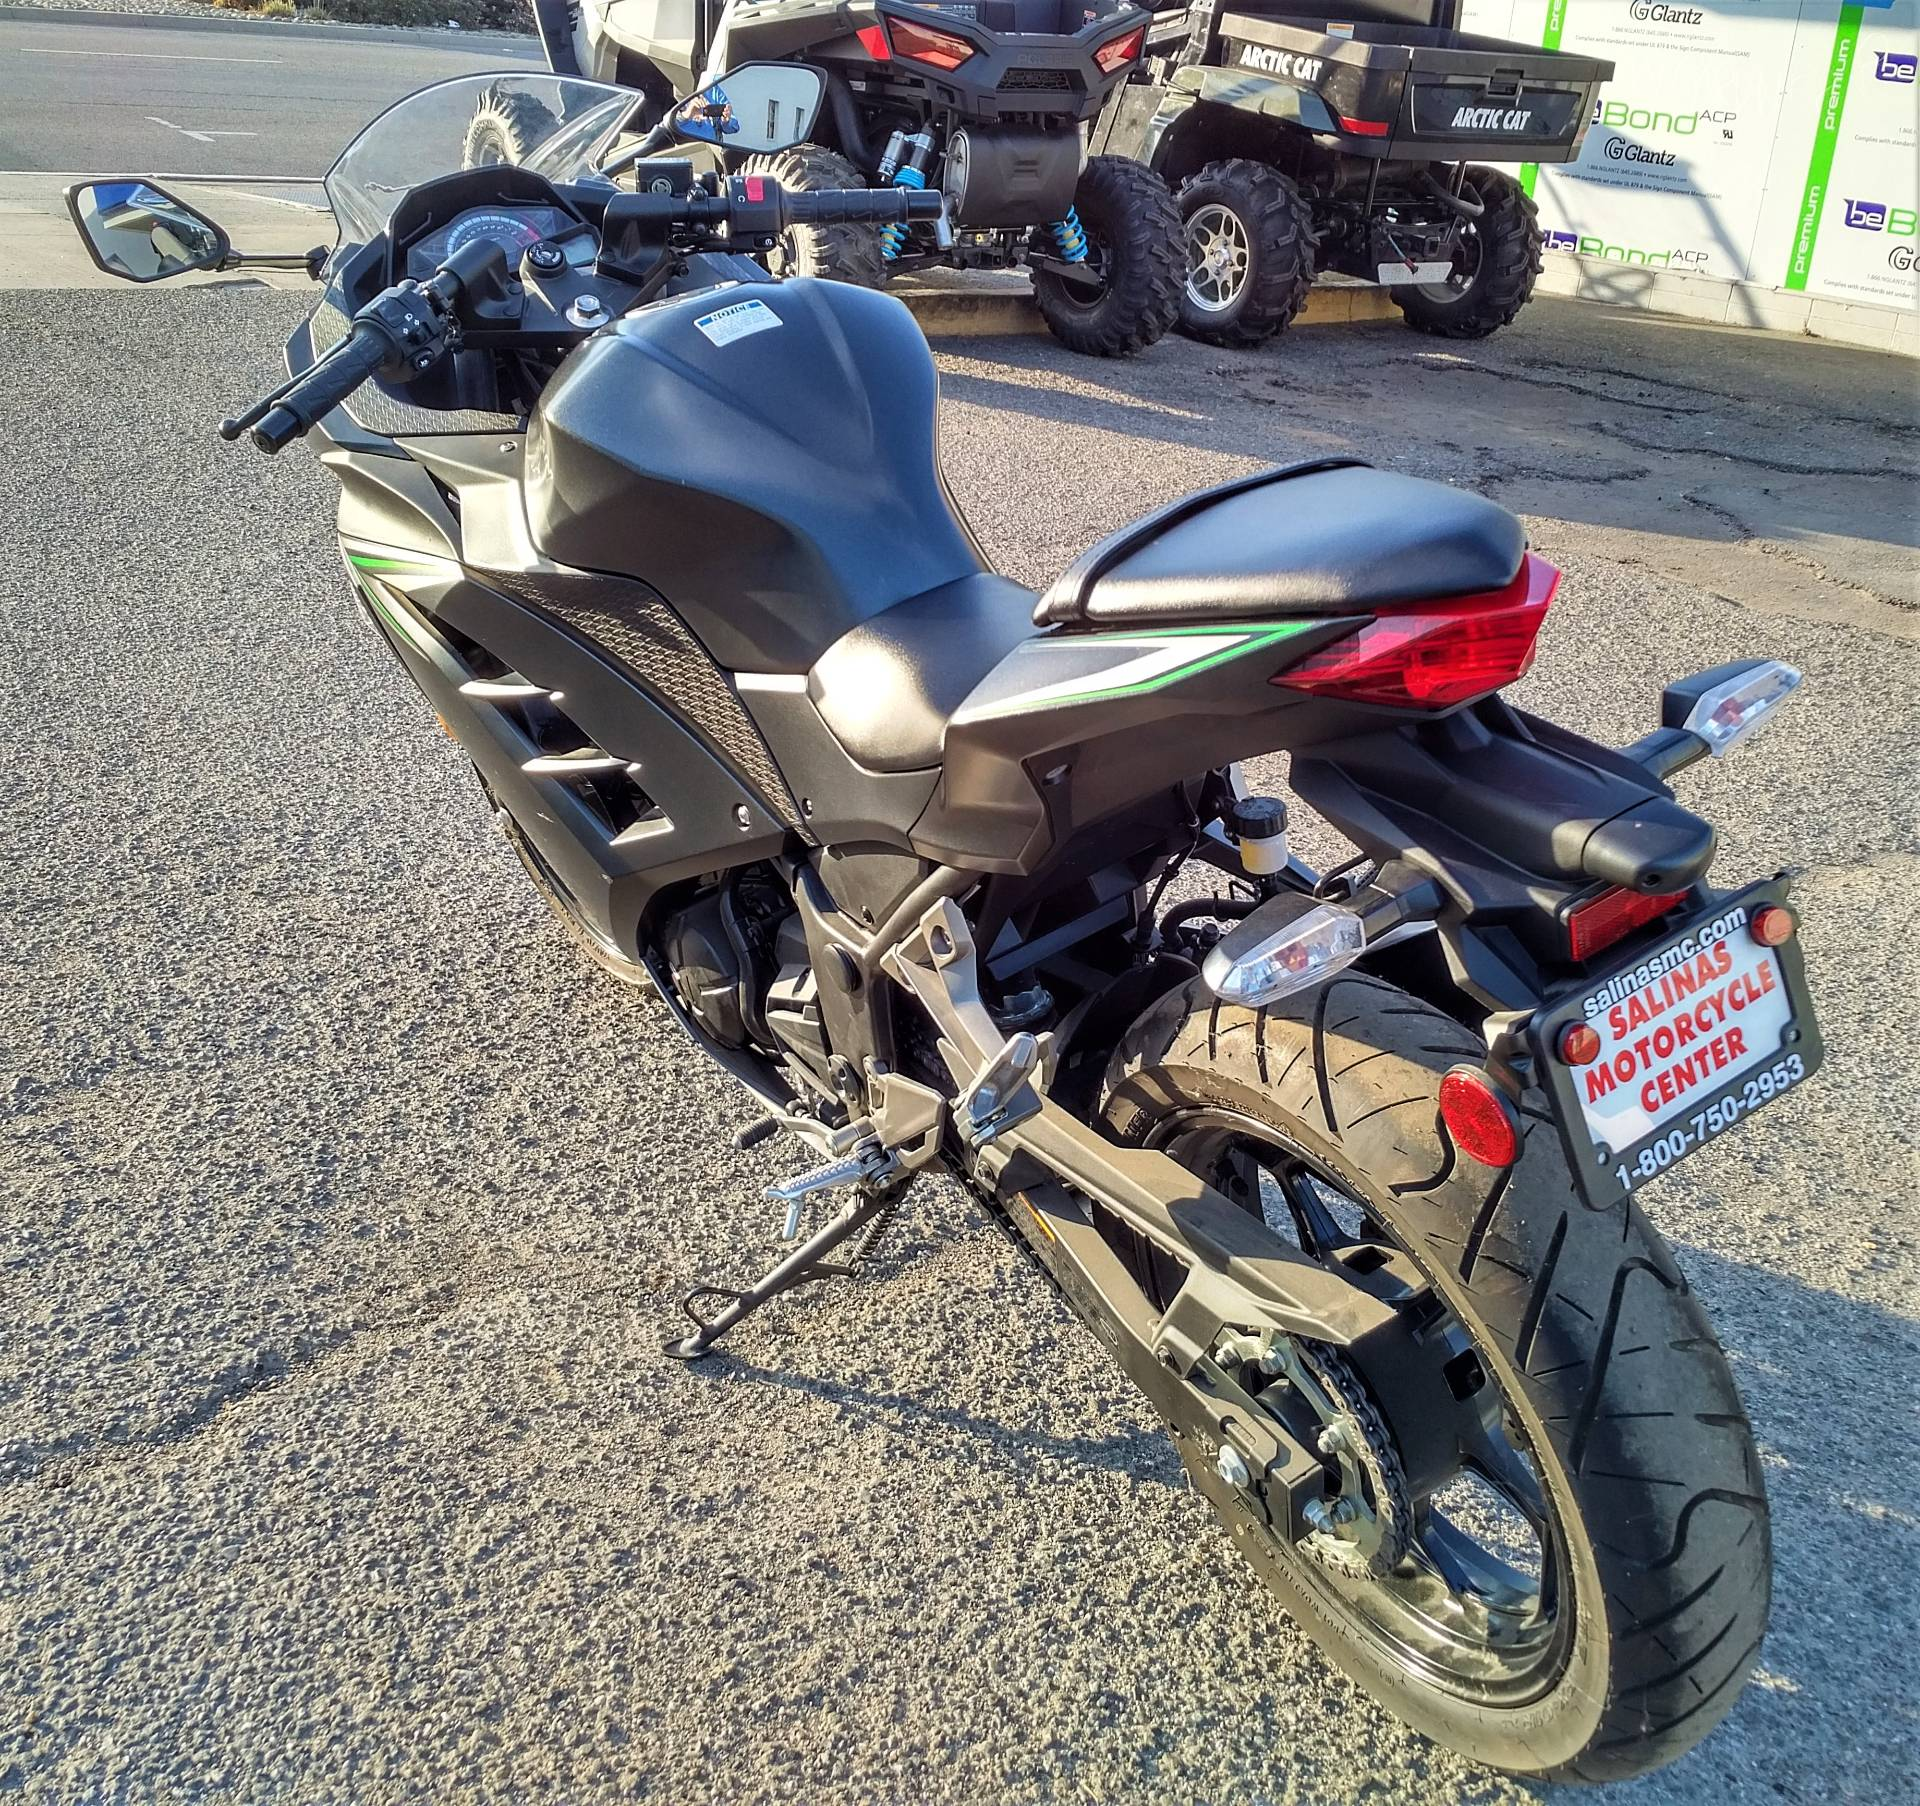 2016 Kawasaki Ninja 300 in Salinas, California - Photo 8